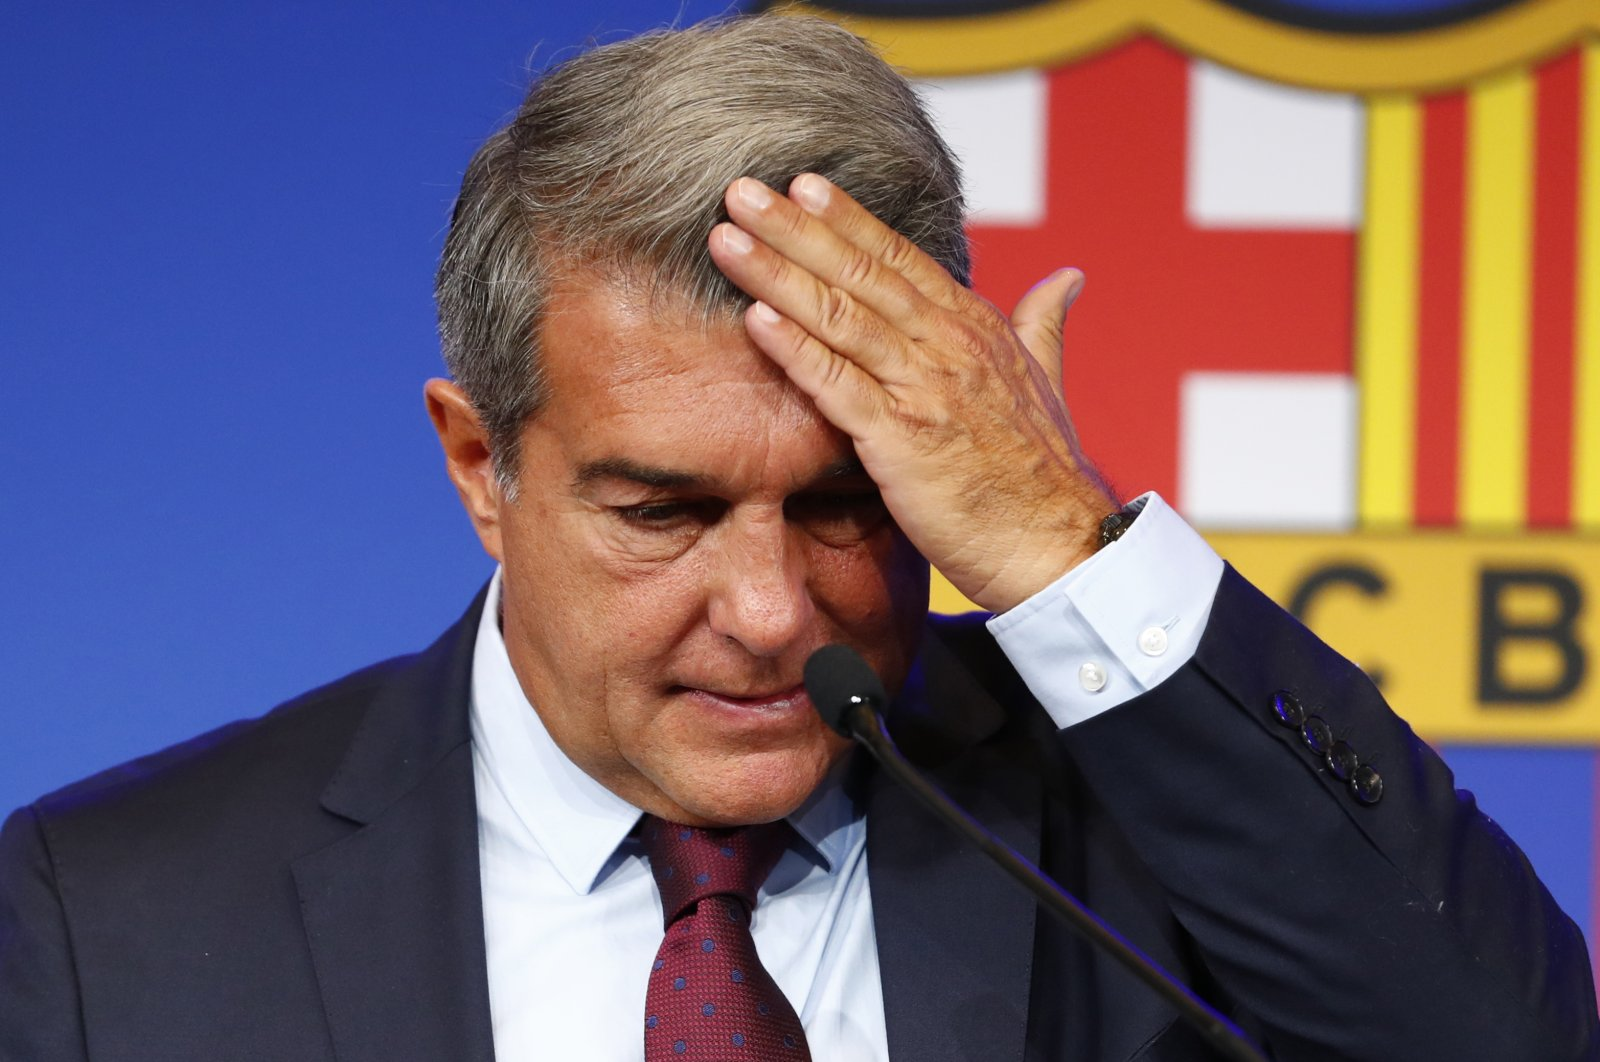 Barcelona club President Joan Laporta begins a news conference in Barcelona, Spain, Friday, Aug. 6, 2021. (AP Photo)